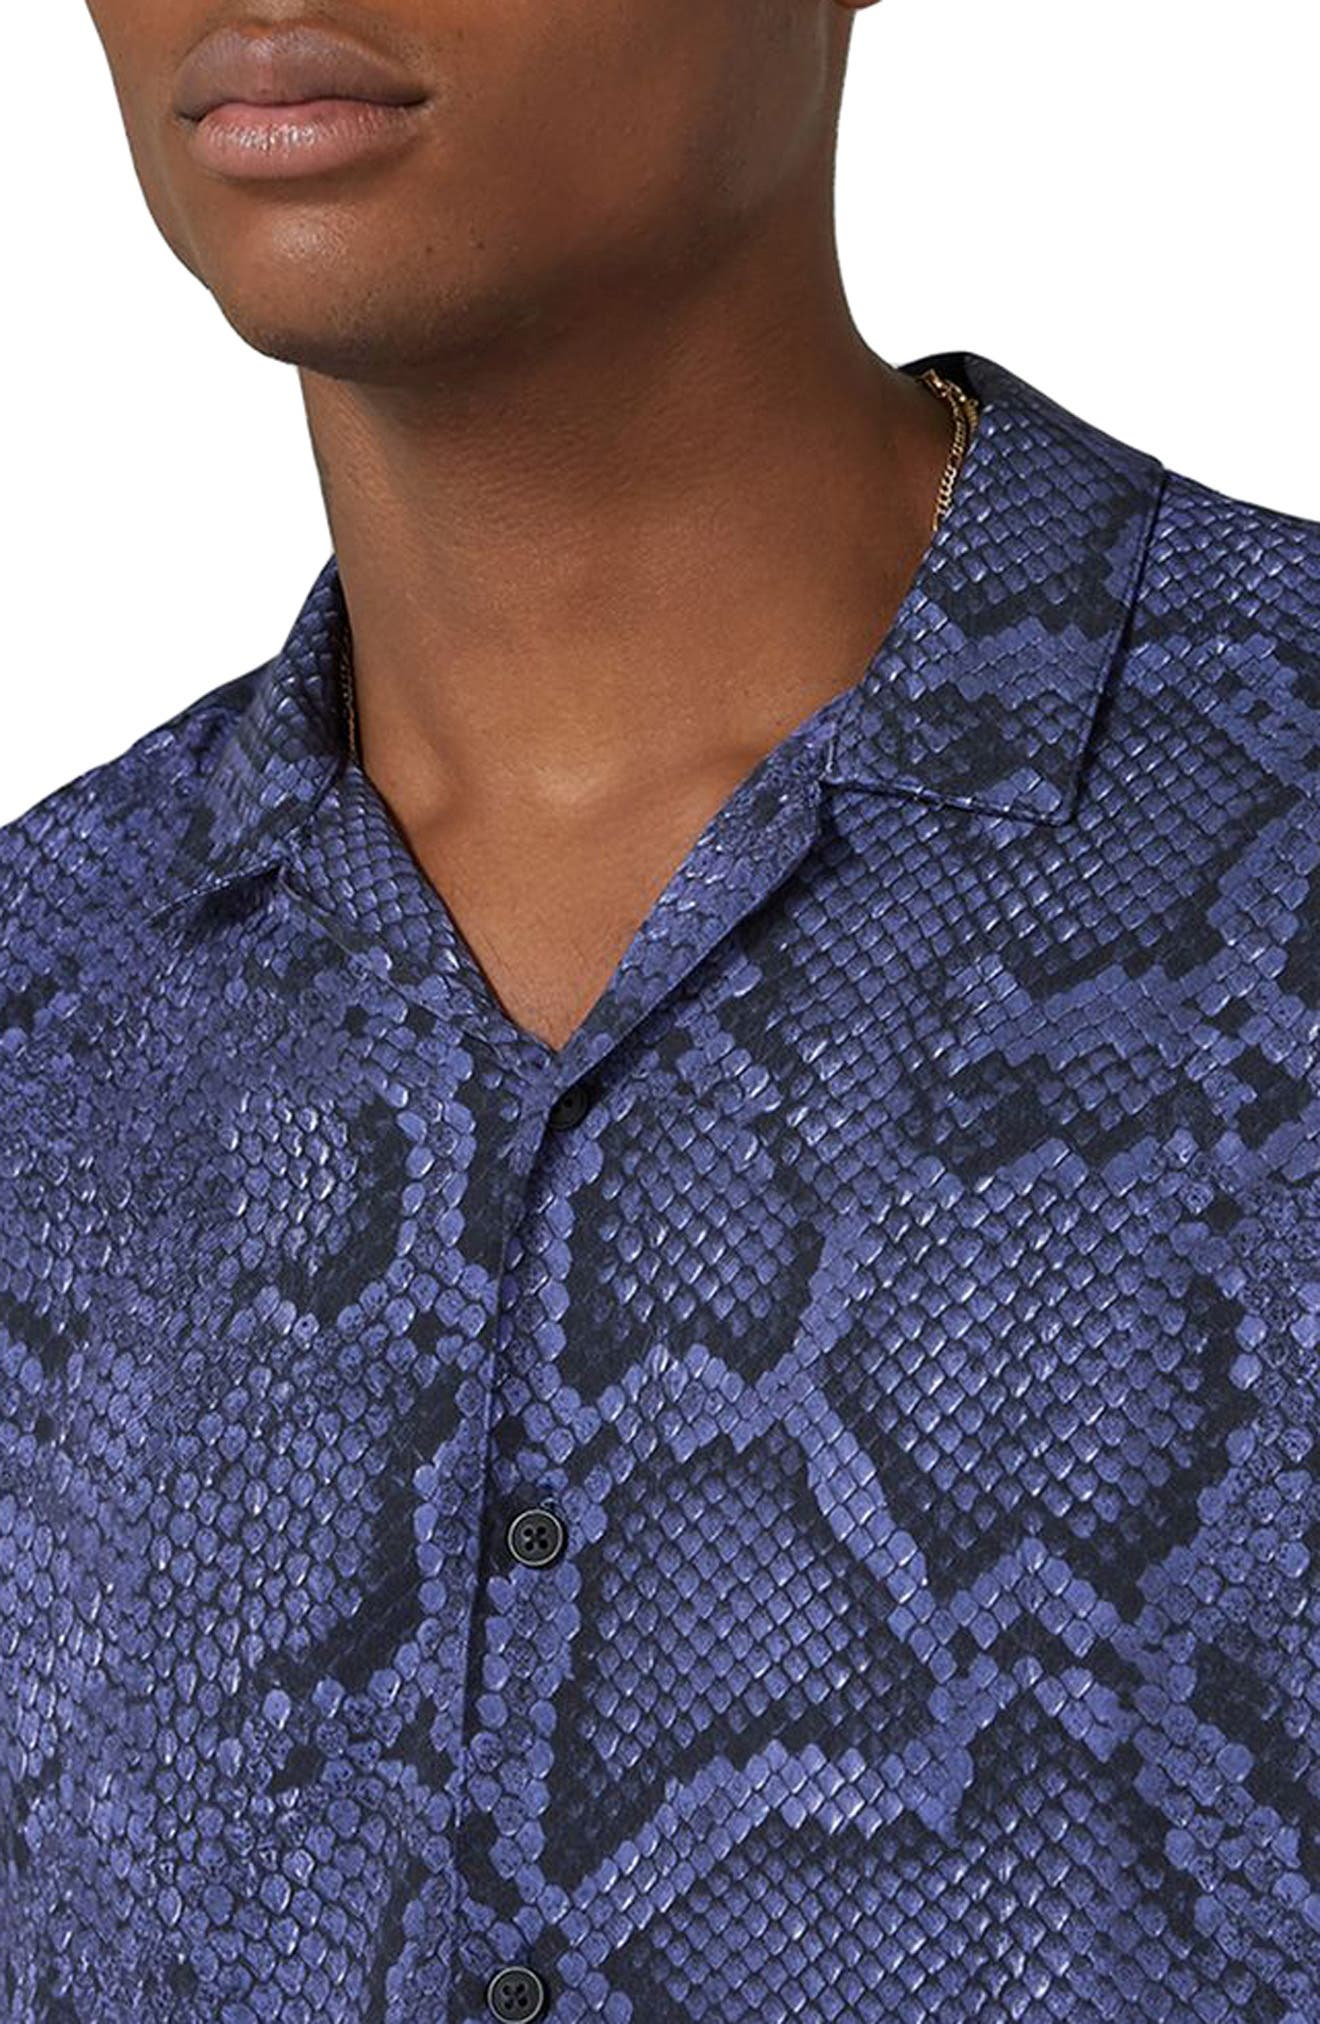 Classic Fit Snakeskin Print Revere Shirt,                         Main,                         color, Purple Multi